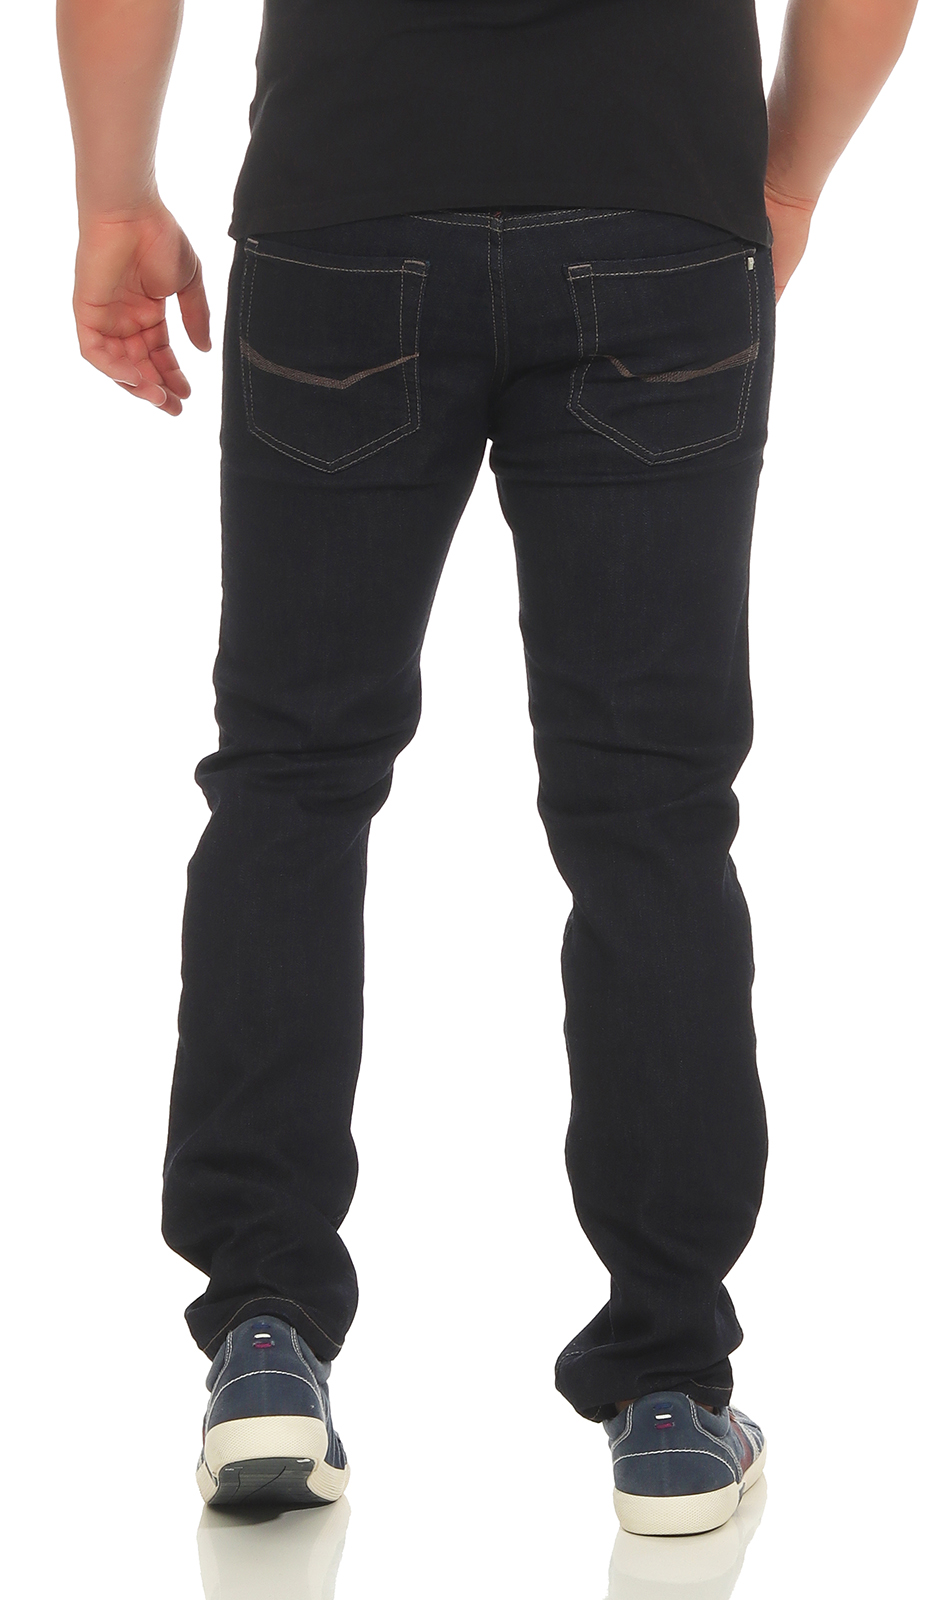 PIERRE-CARDIN-Herren-Jeans-Lyon-Hose-Tapered-Future-Flex-Super-Stretch-Premium-3 Indexbild 12